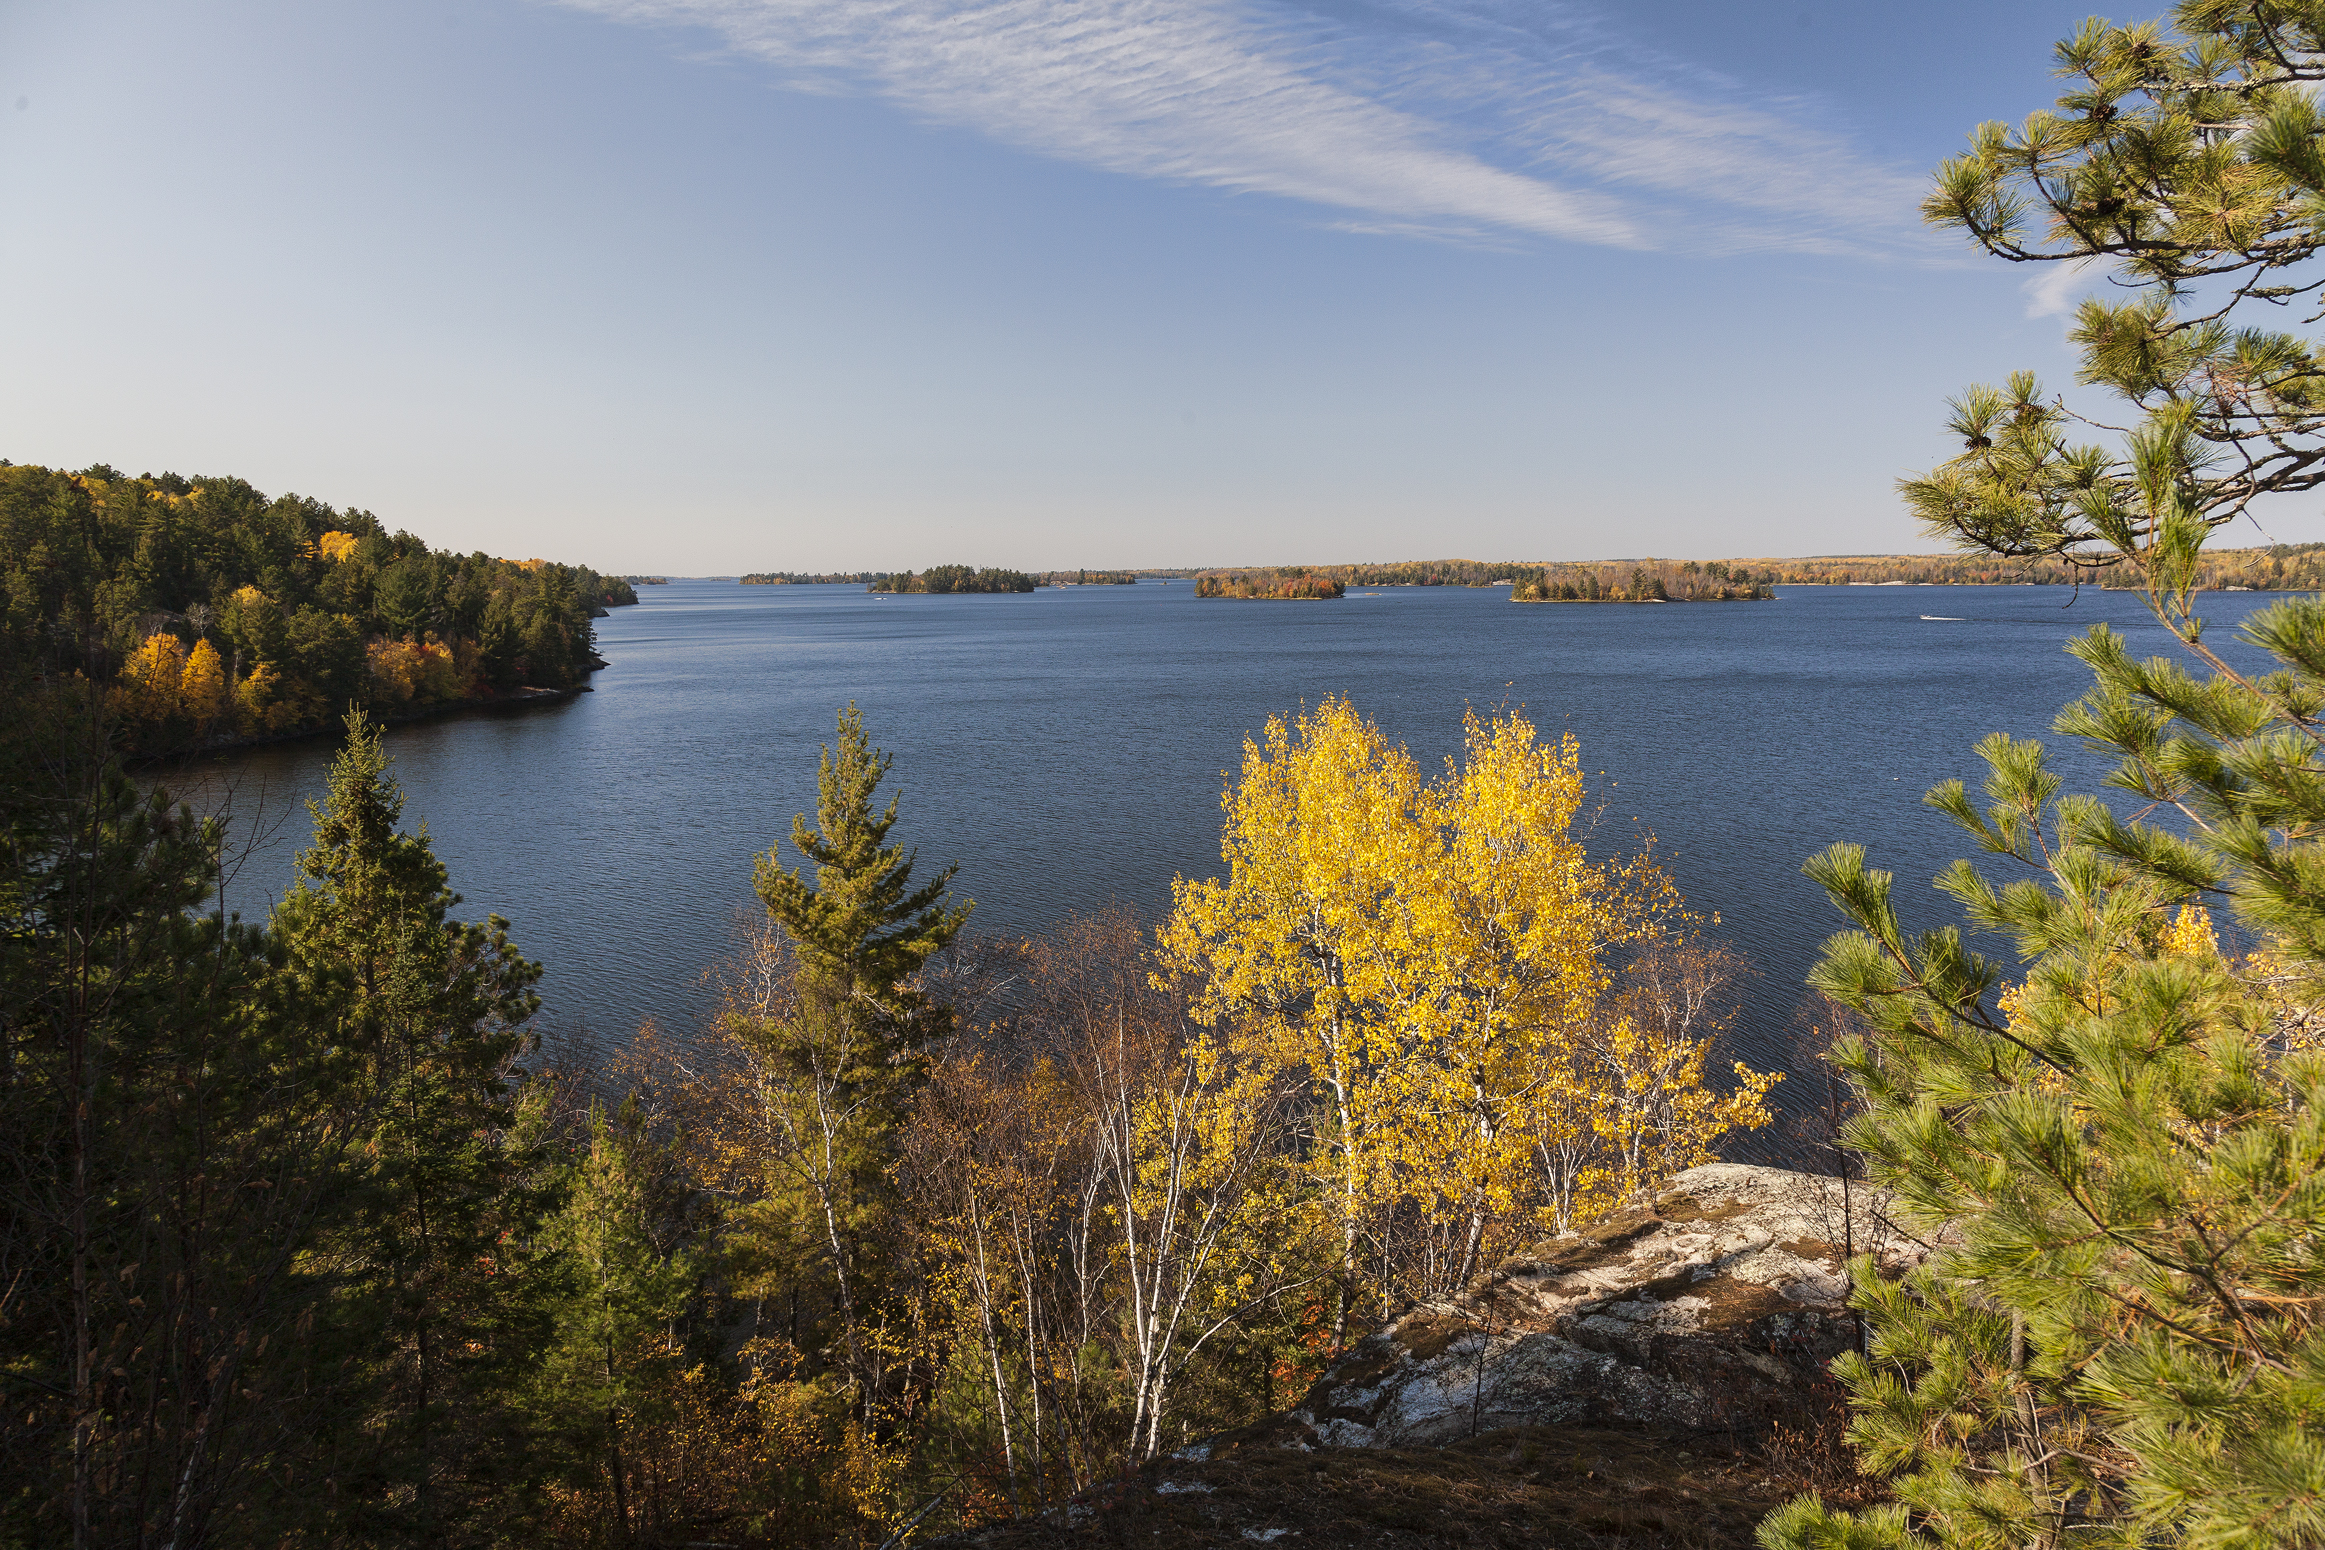 Landscape view of Voyageurs National Park courtesy of Andrew Thomas.